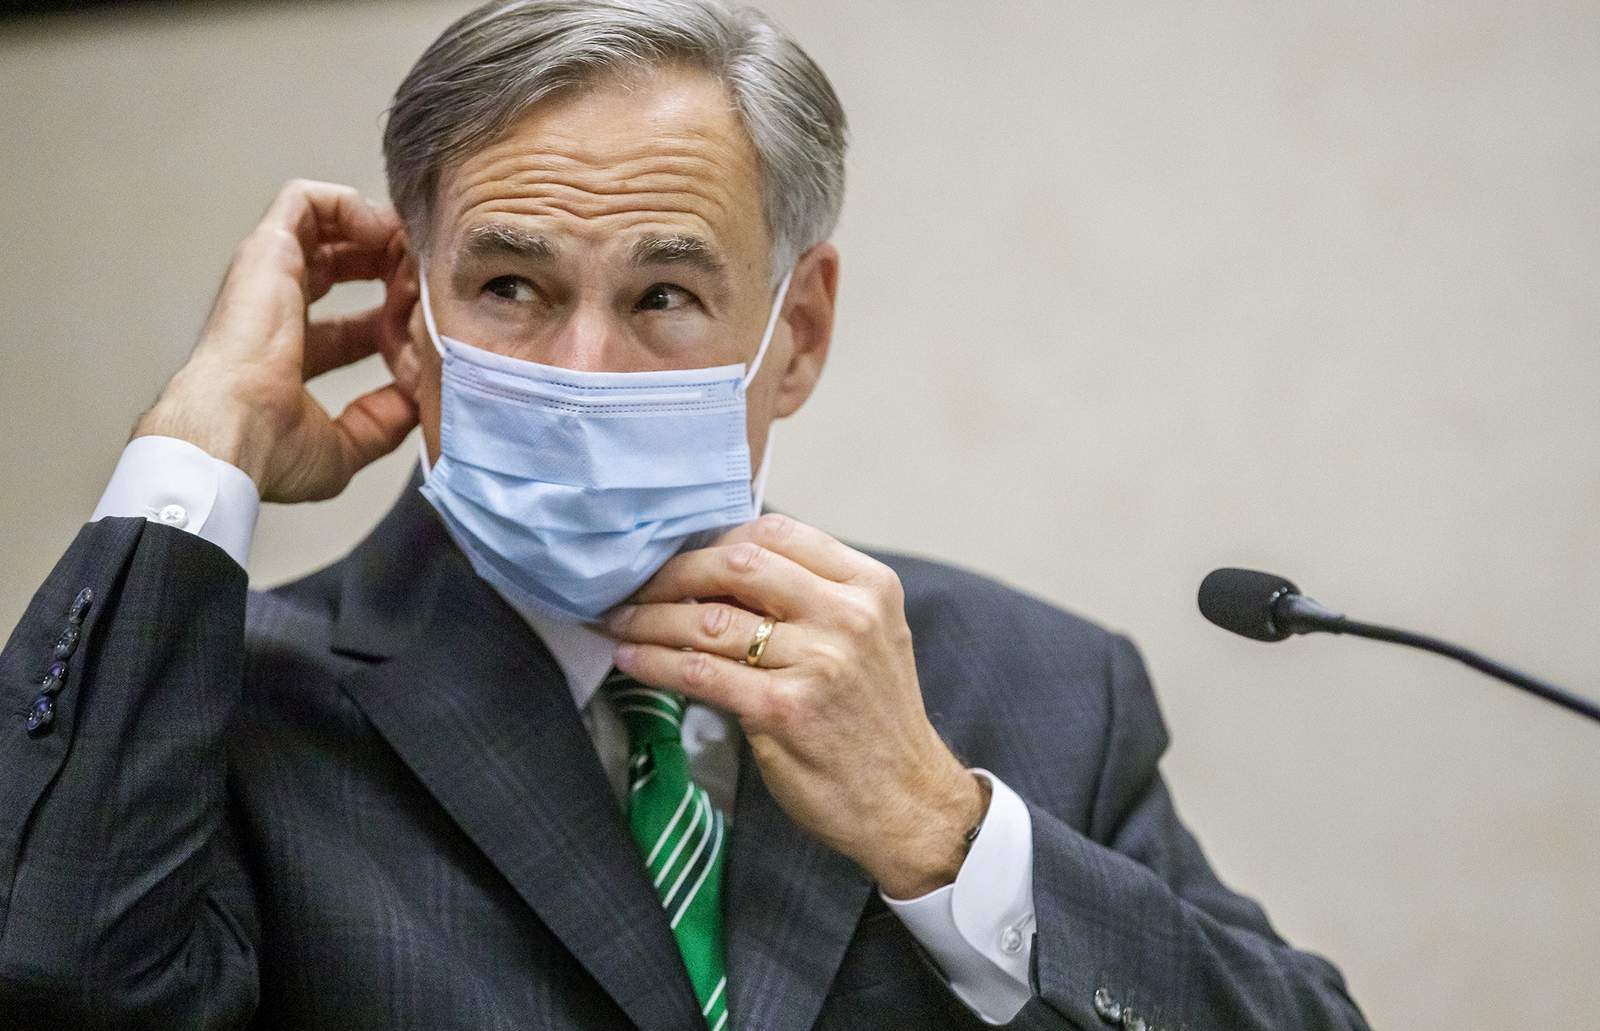 WATCH: City of El Paso briefing on mask rule, court order vs. Abbott 6